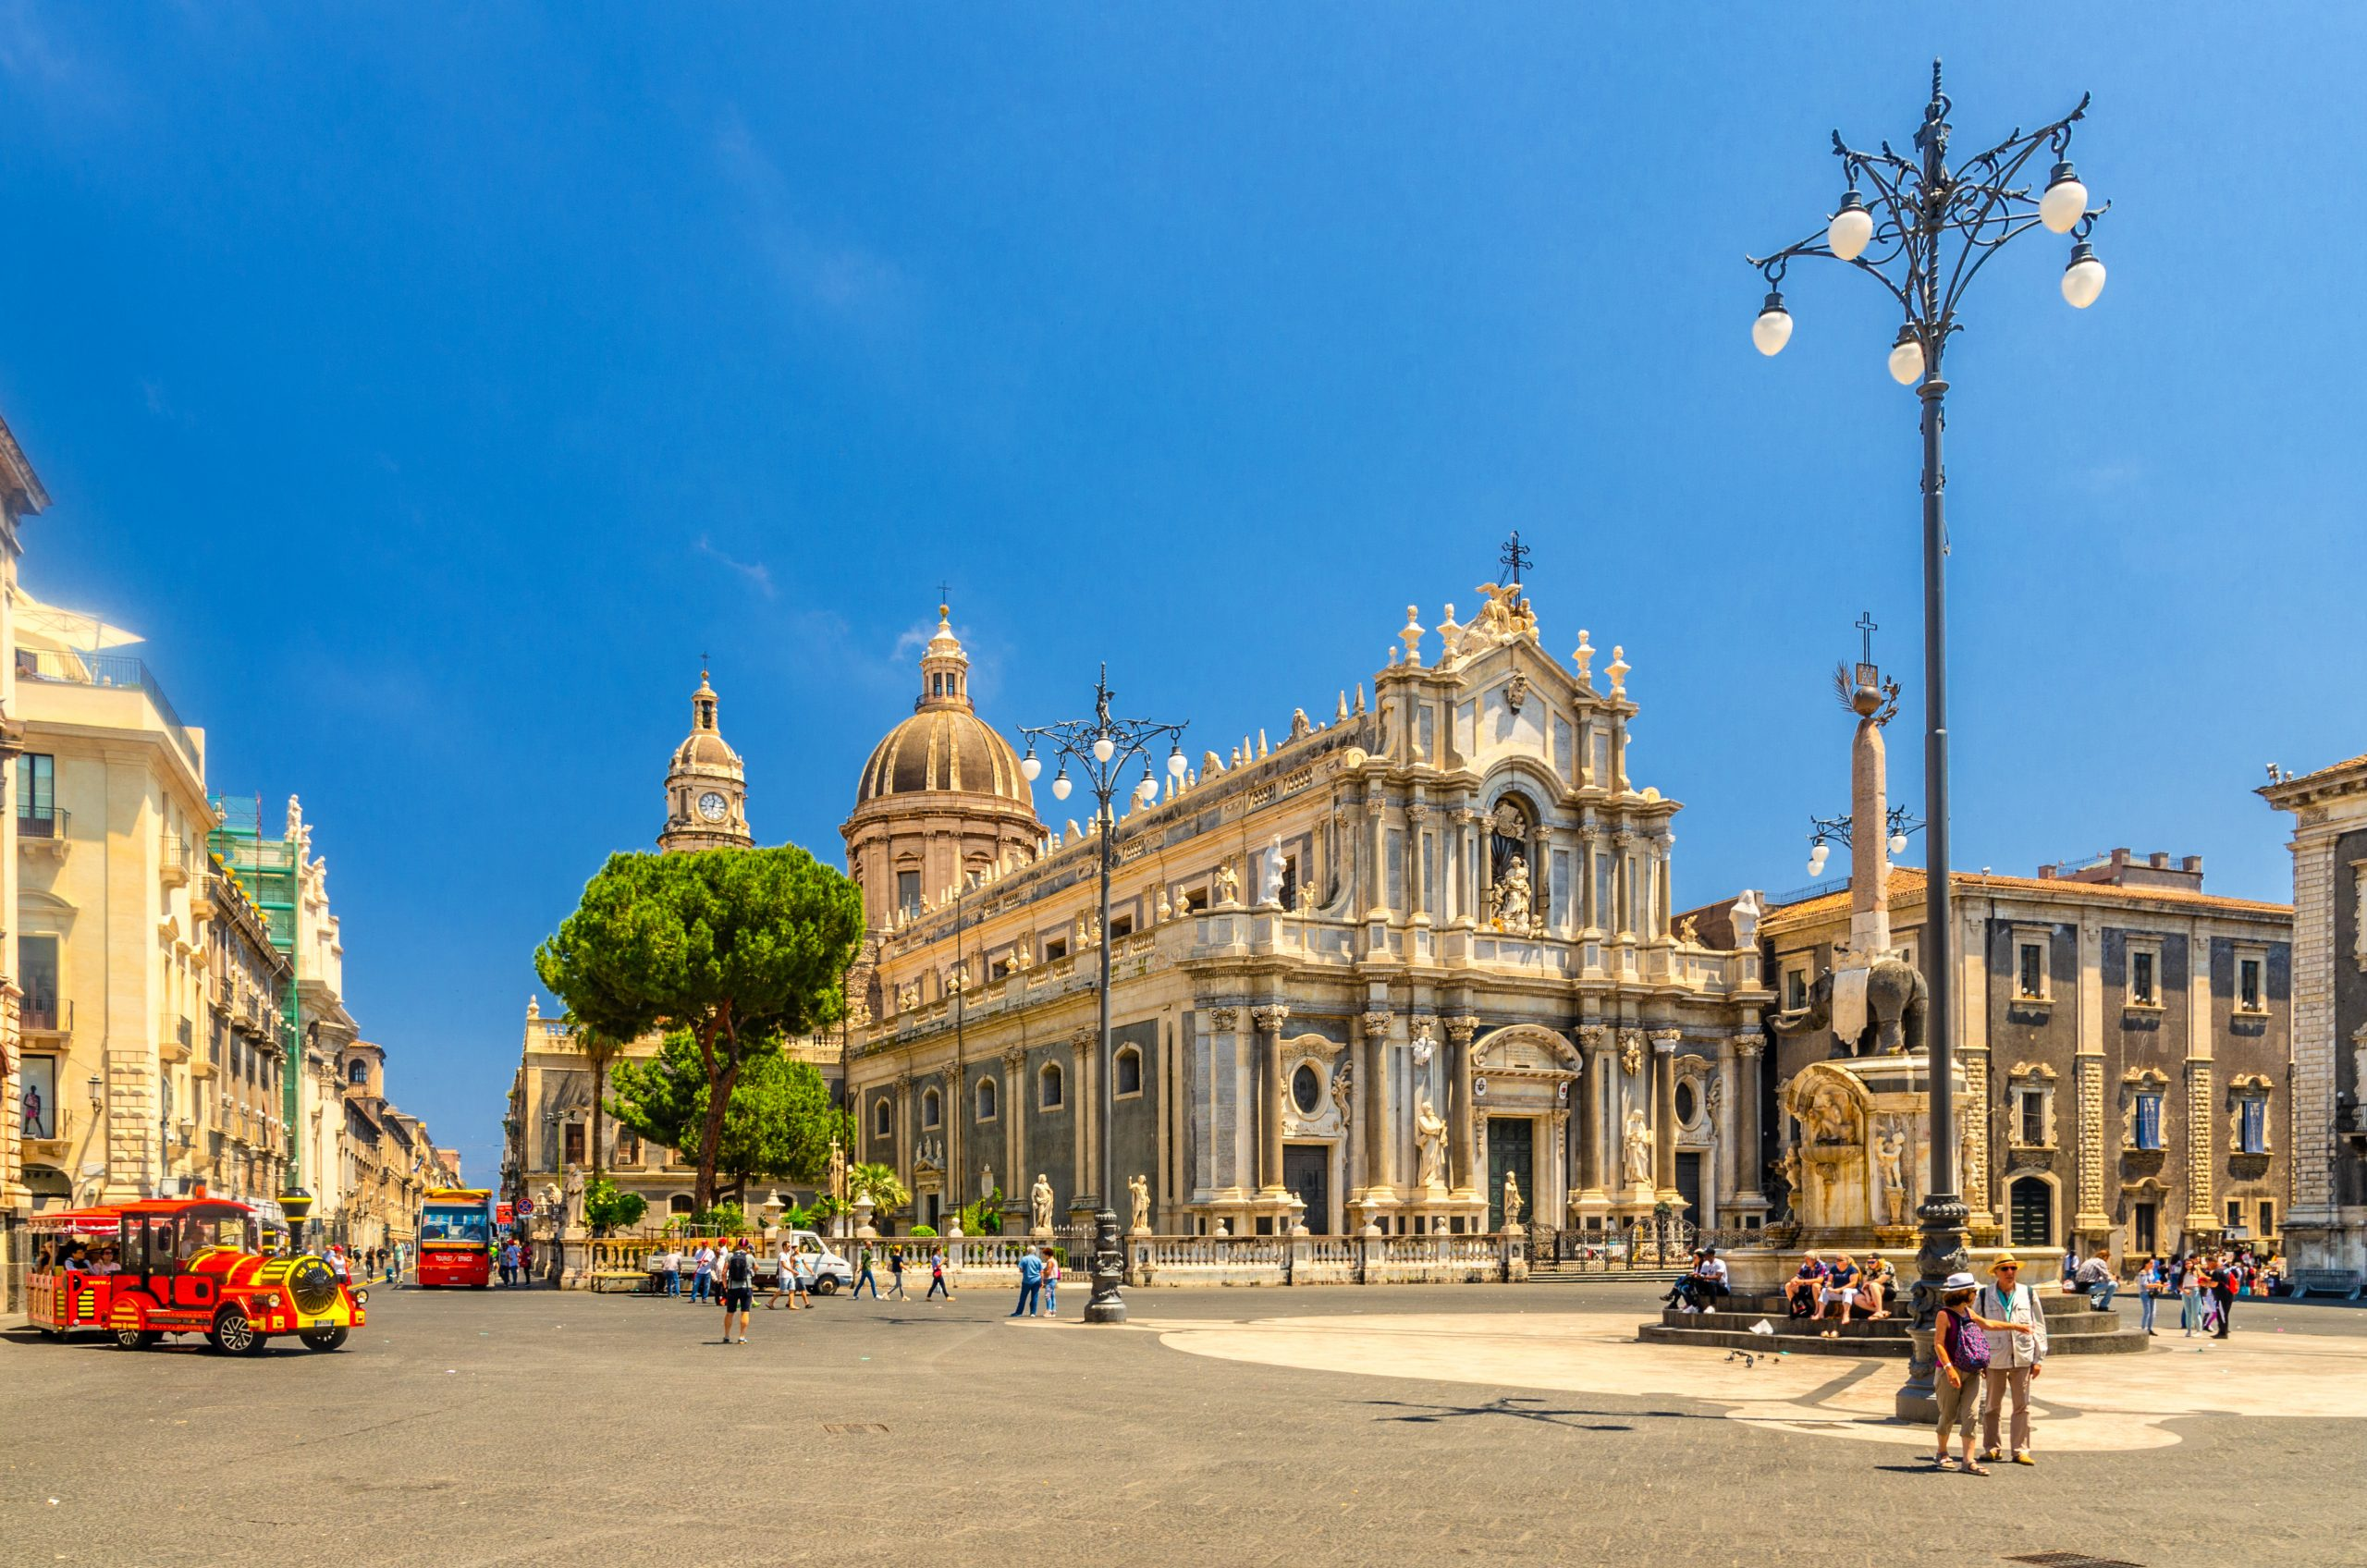 Italy, Catania, May 13, 2018: Elephant Statue fountain, Cathedral of Santa Agatha, touristic red train and walking people on Piazza del Duomo square in Catania historical city centre of Sicily island